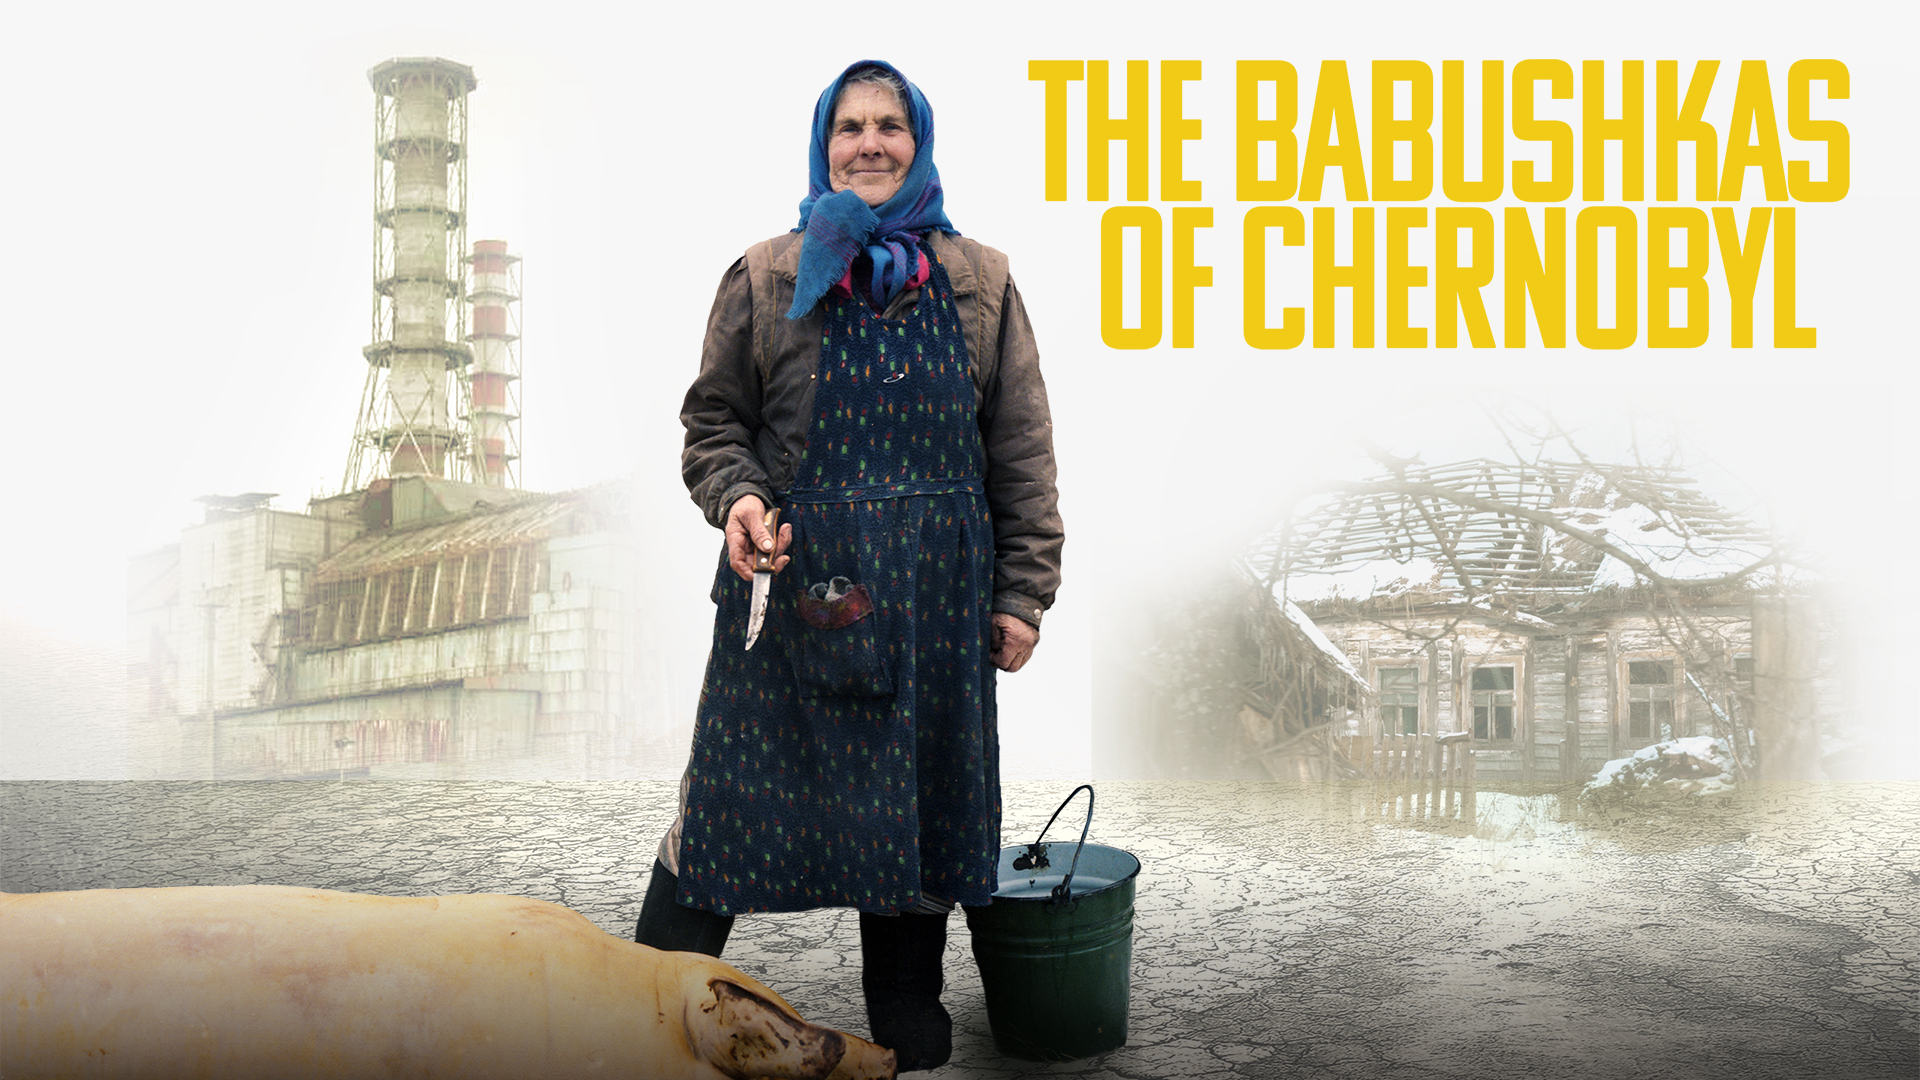 The Babushkas of Chernobyl